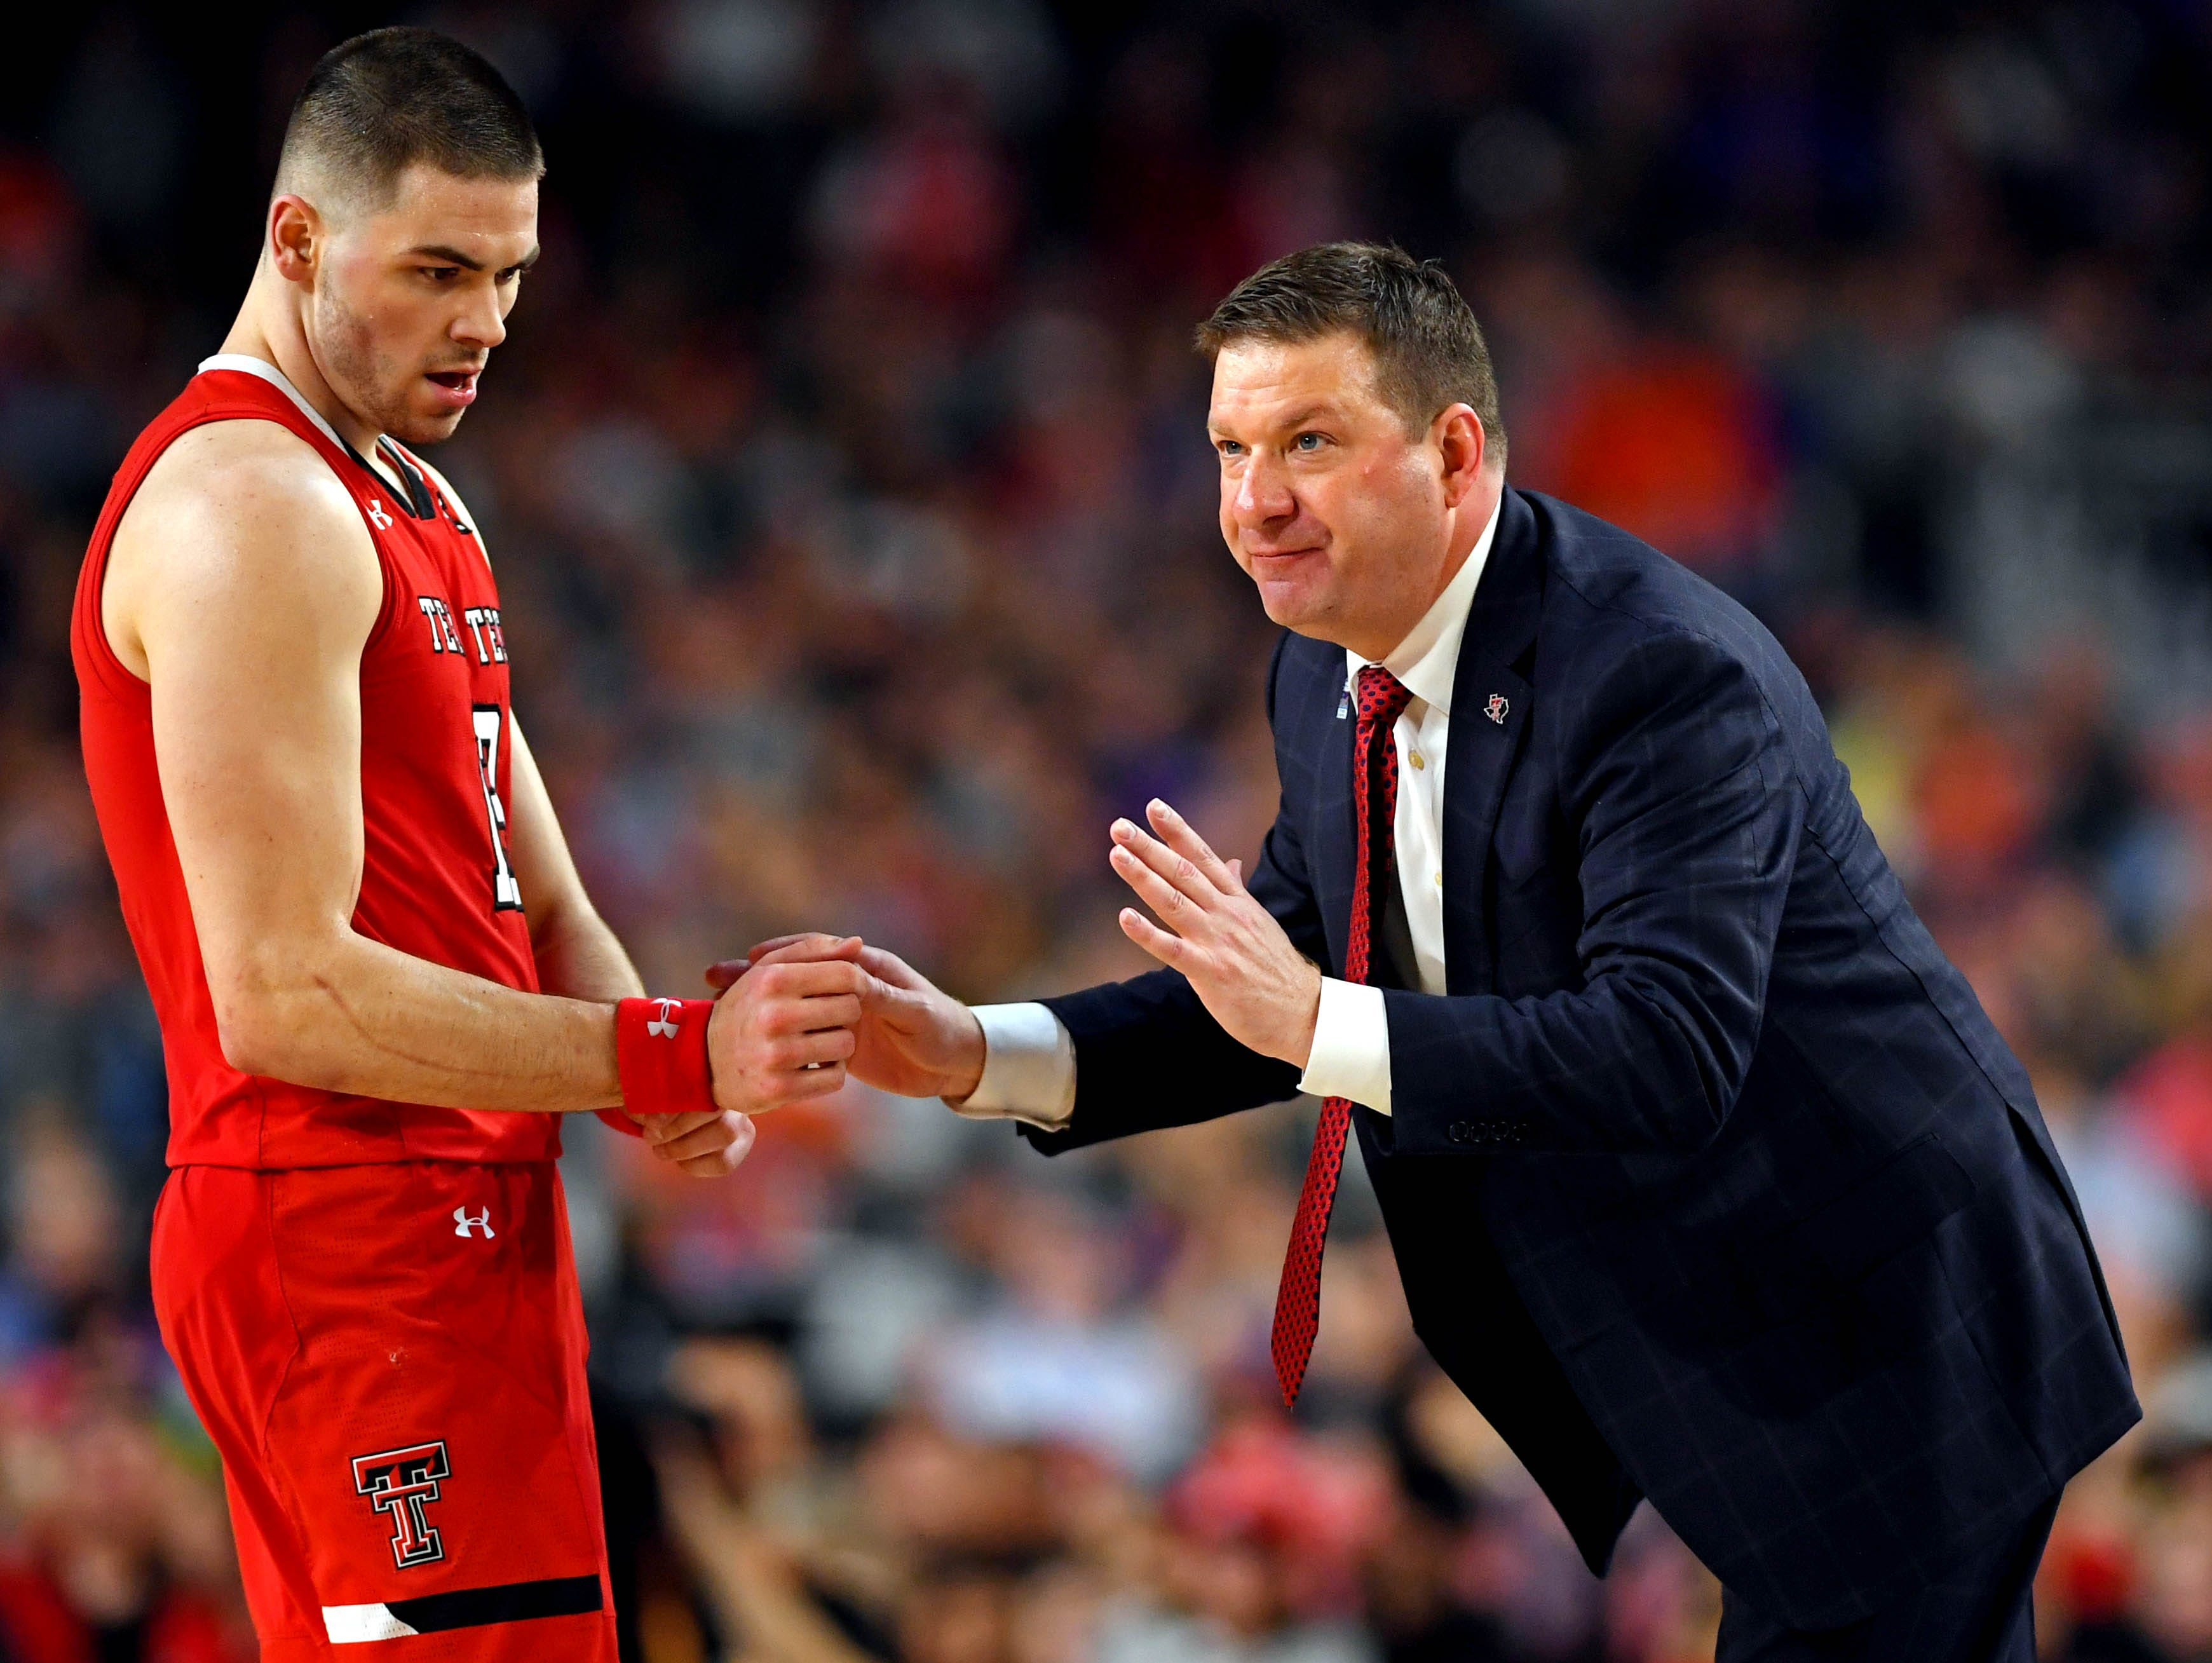 Apr 6, 2019; Minneapolis, MN, USA; Texas Tech Red Raiders head coach Chris Beard talks to Texas Tech Red Raiders guard Matt Mooney (13) during the second half against the Michigan State Spartans in the semifinals of the 2019 men's Final Four at US Bank Stadium. Mandatory Credit: Bob Donnan-USA TODAY Sports